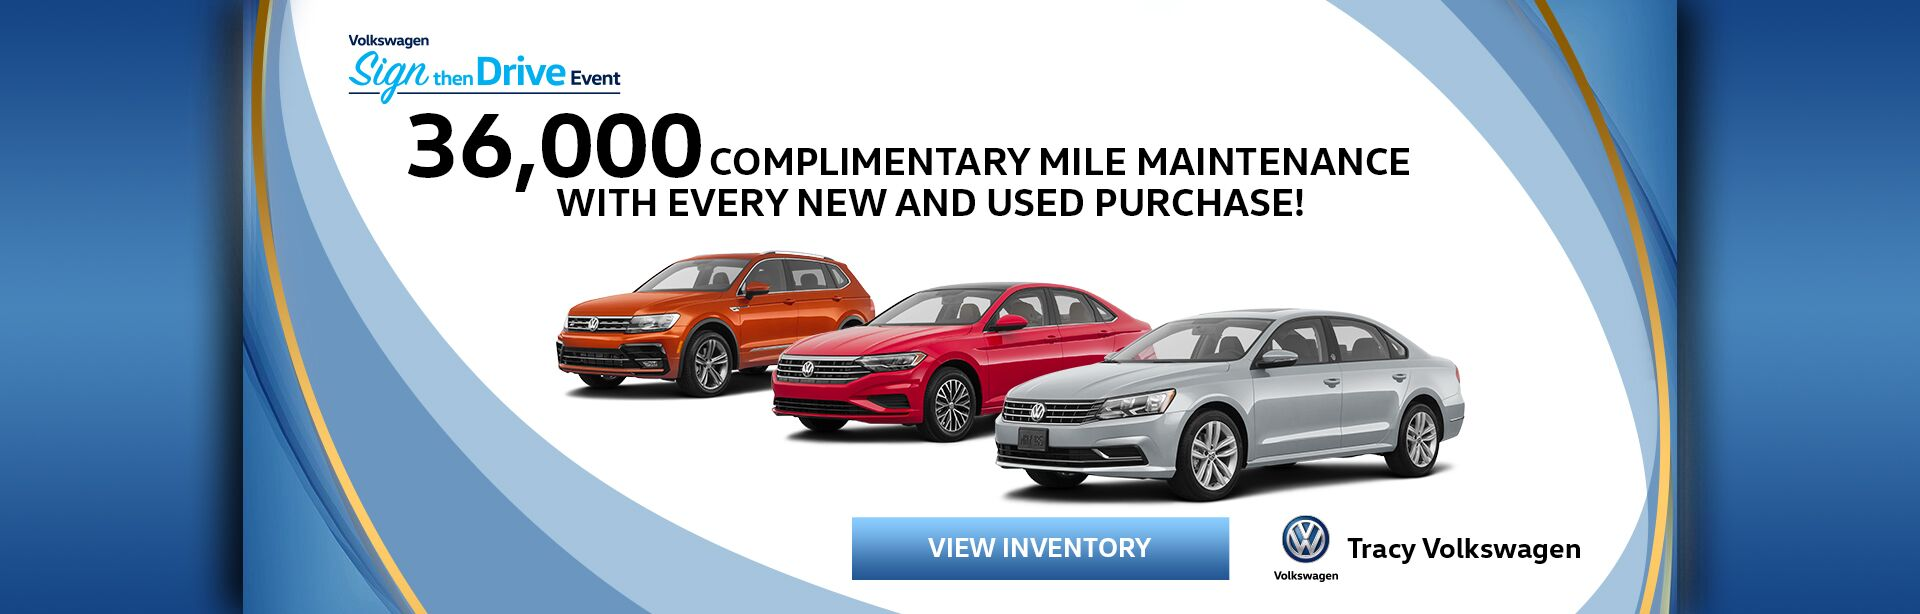 26k Complimentary Mile Maintenance